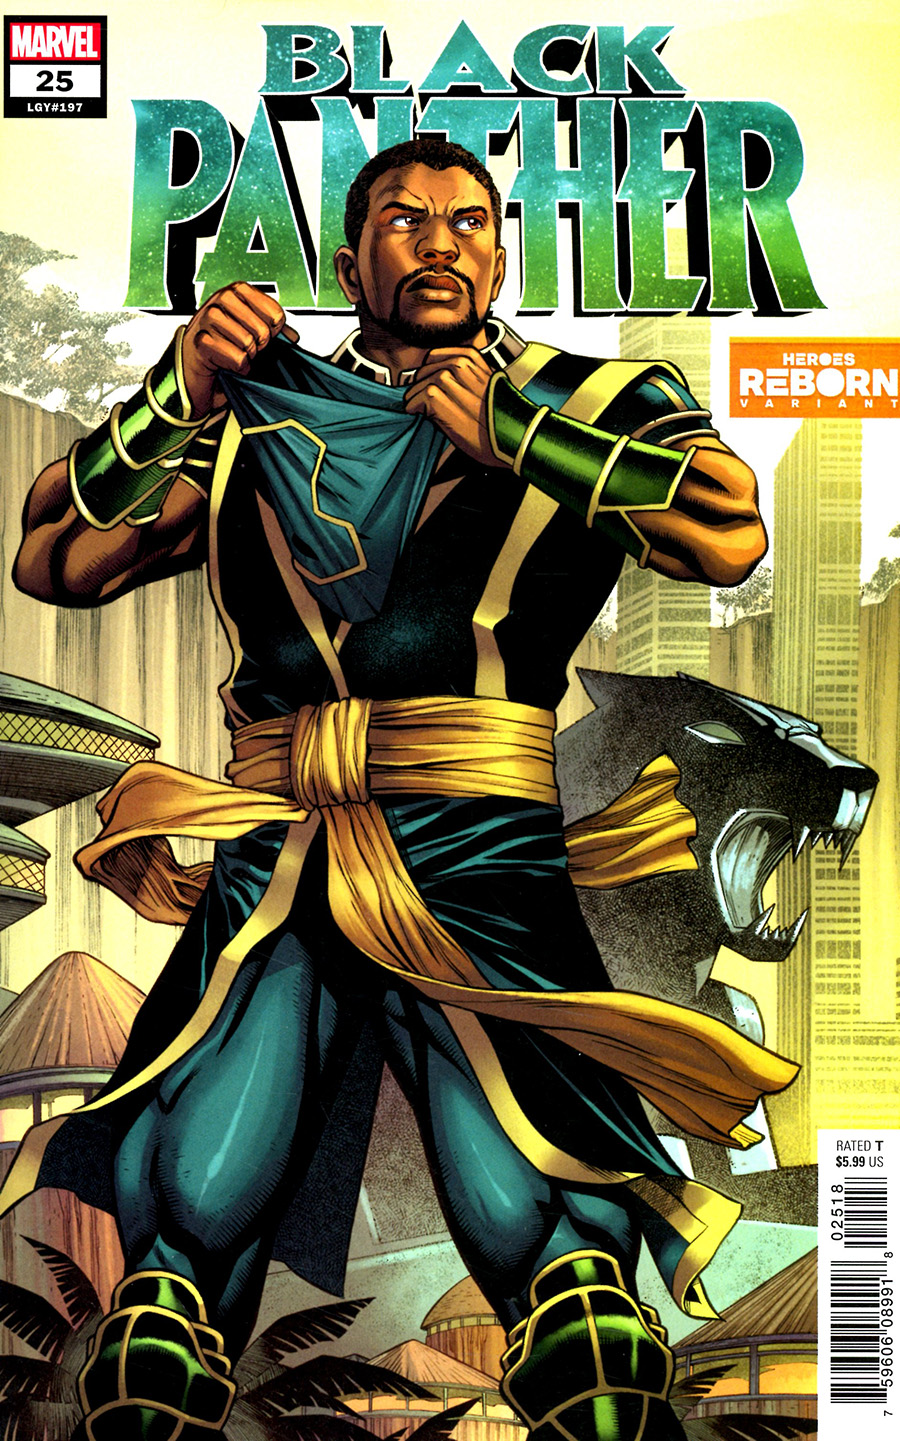 Black Panther Vol 7 #25 Cover B Variant Carlos Pacheco Heroes Reborn Cover